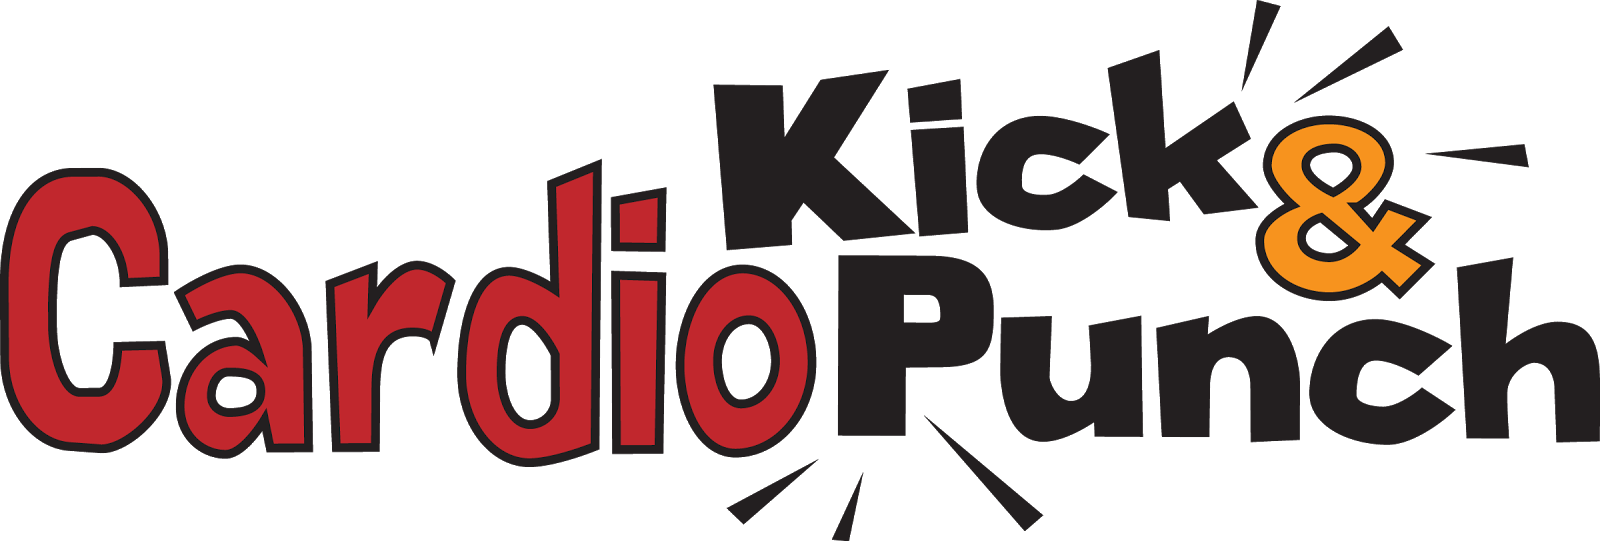 Cardio Kick and Punch fitness class logo by Sarah Pecorino for The Zoo Health Club NH